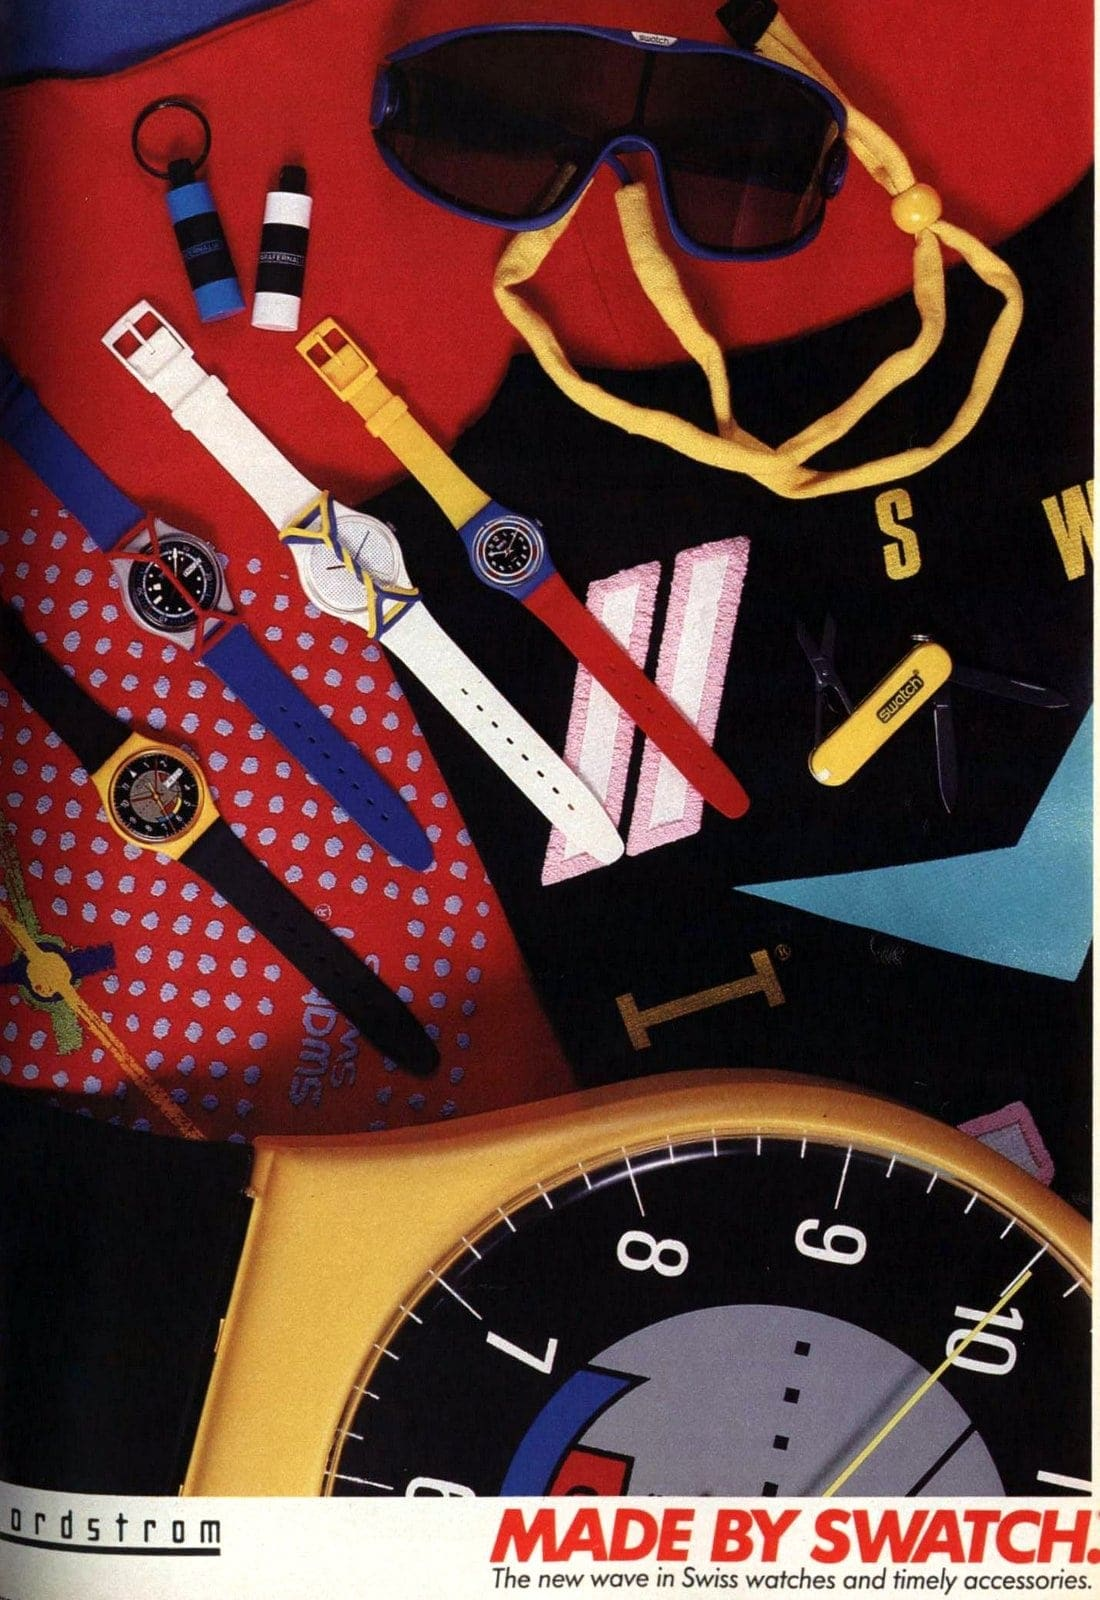 Swatches - New wave in Swiss watches 1980s